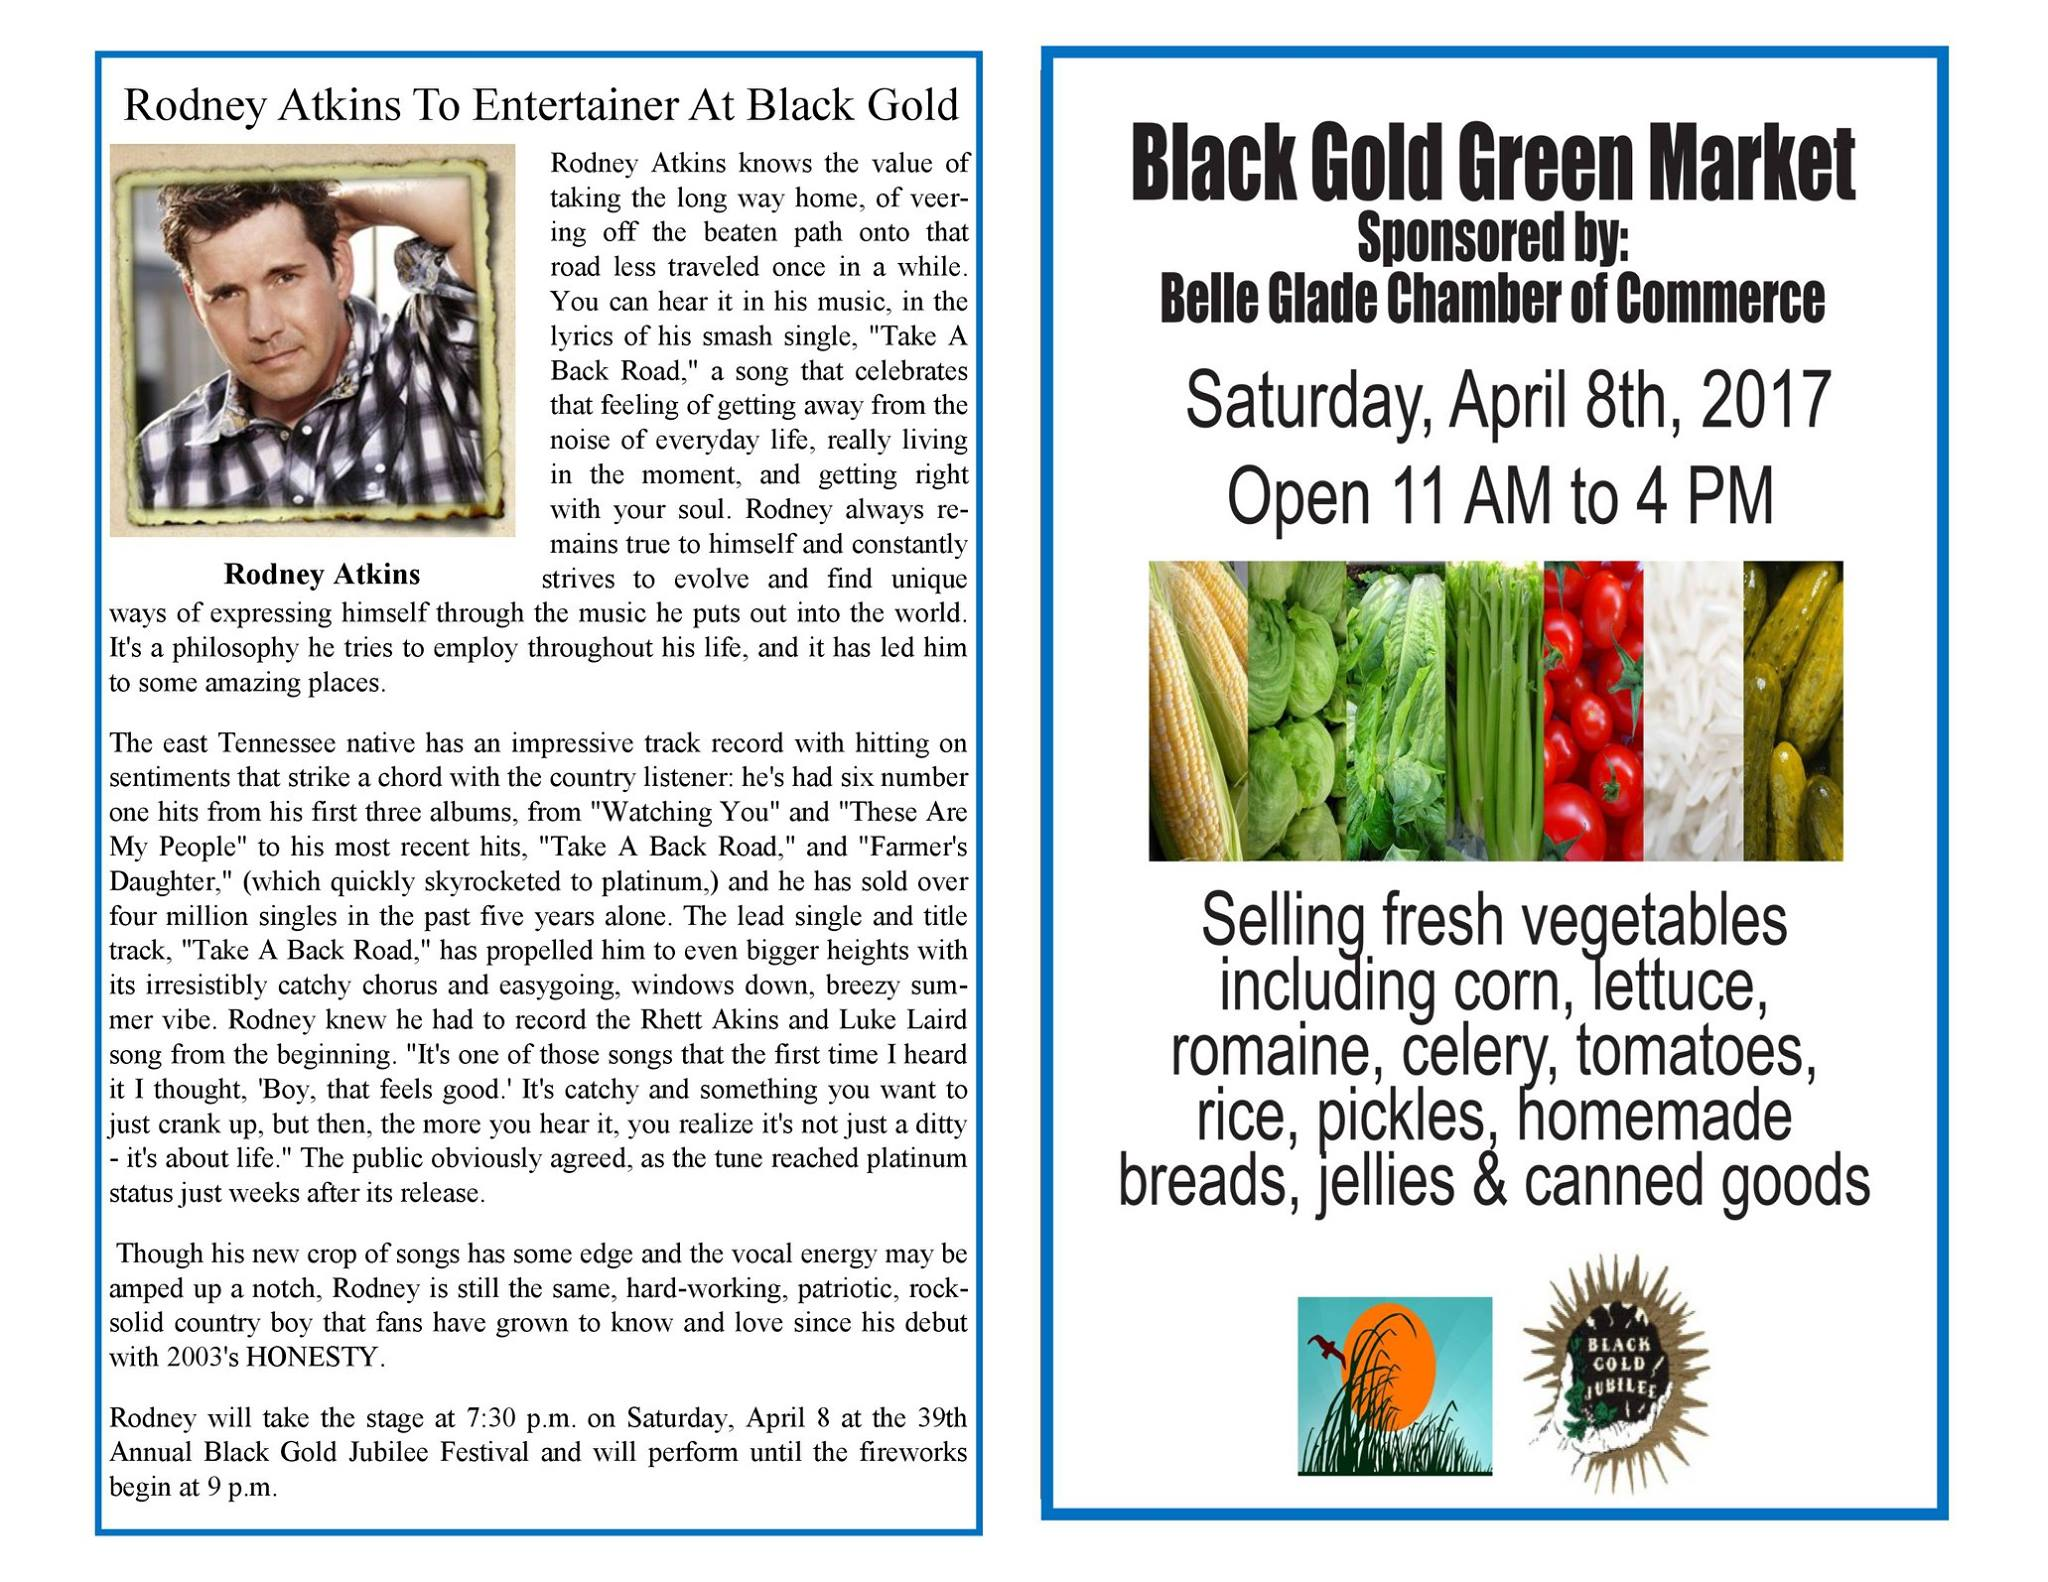 Belle Glade Chamber of Commerce - Belle Glade Thumbnails